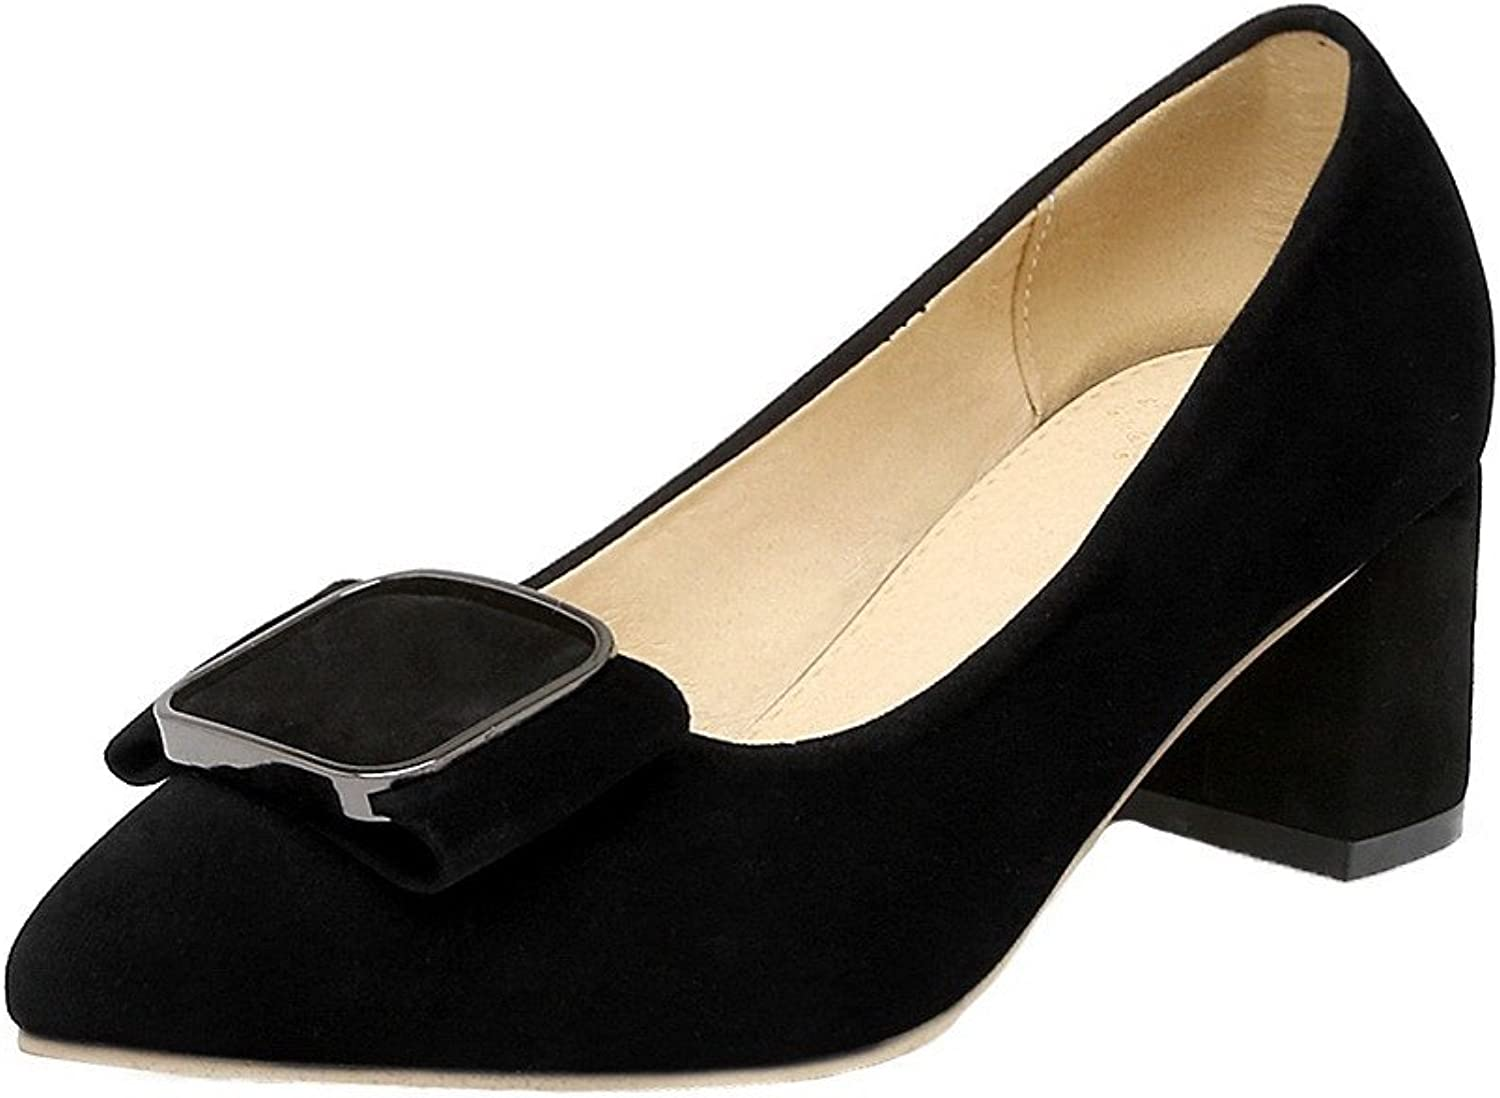 WeiPoot Women's Kitten-Heels Frosted Solid Pointed Closed Toe Pumps-shoes, Black, 37